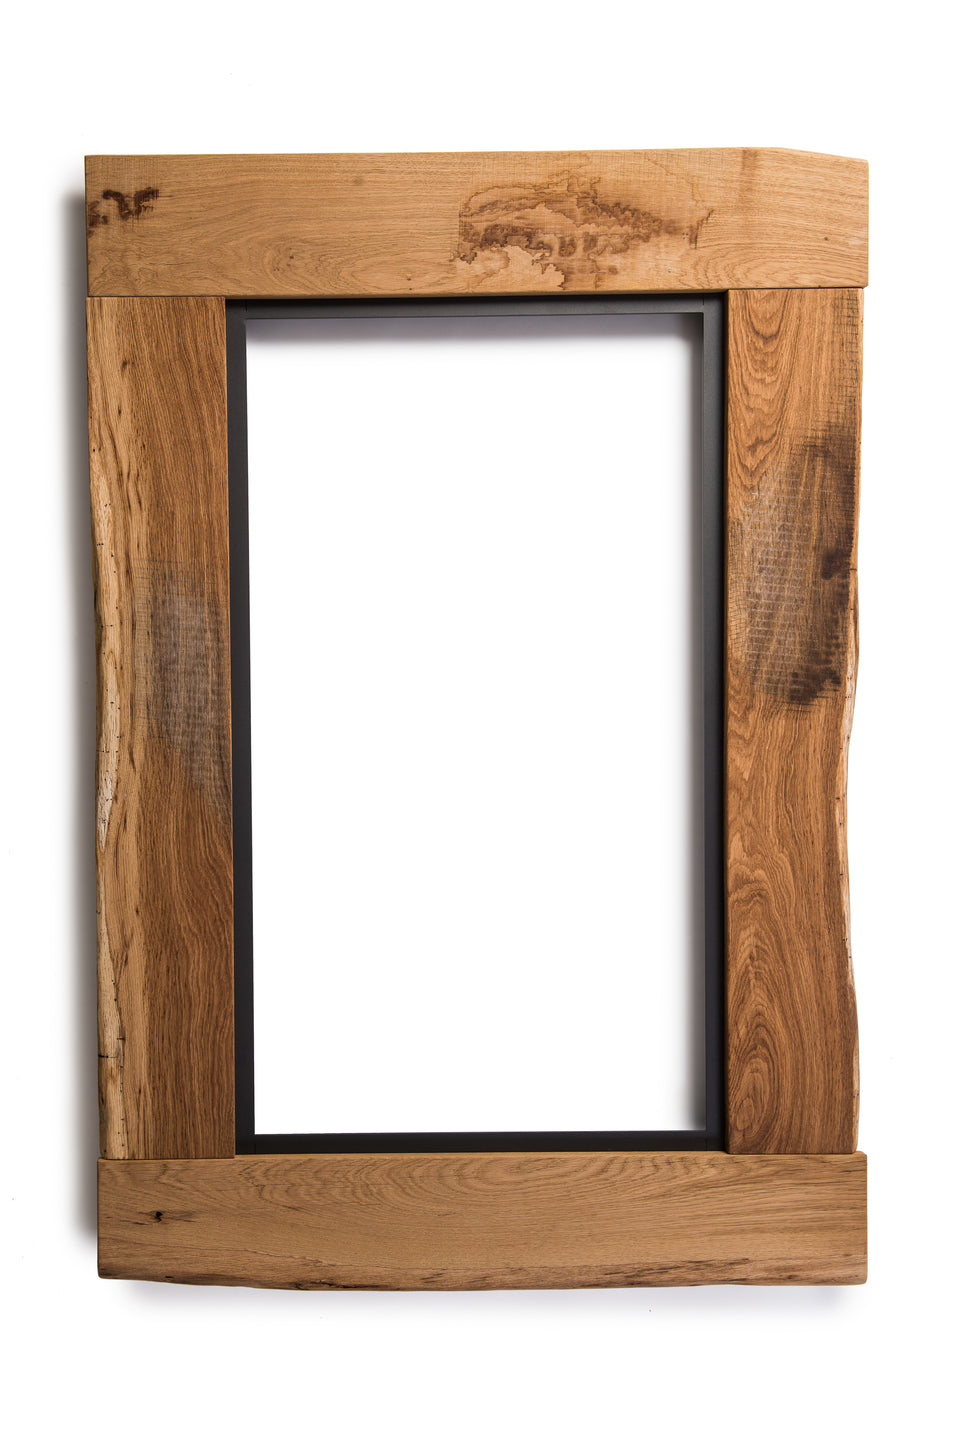 Groyer - F510 rustic solid wood framed mirror